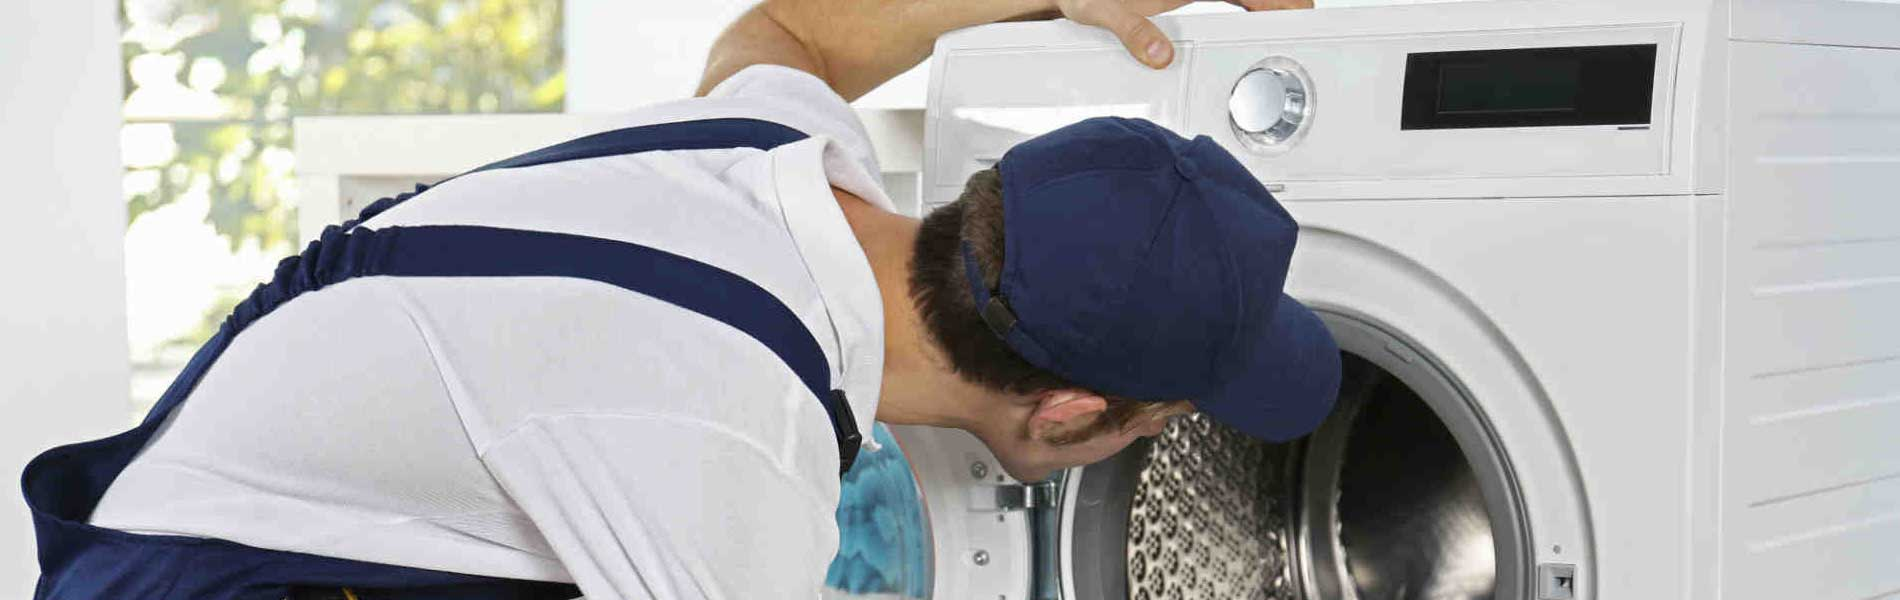 LG Washing Machine Service in Park Town